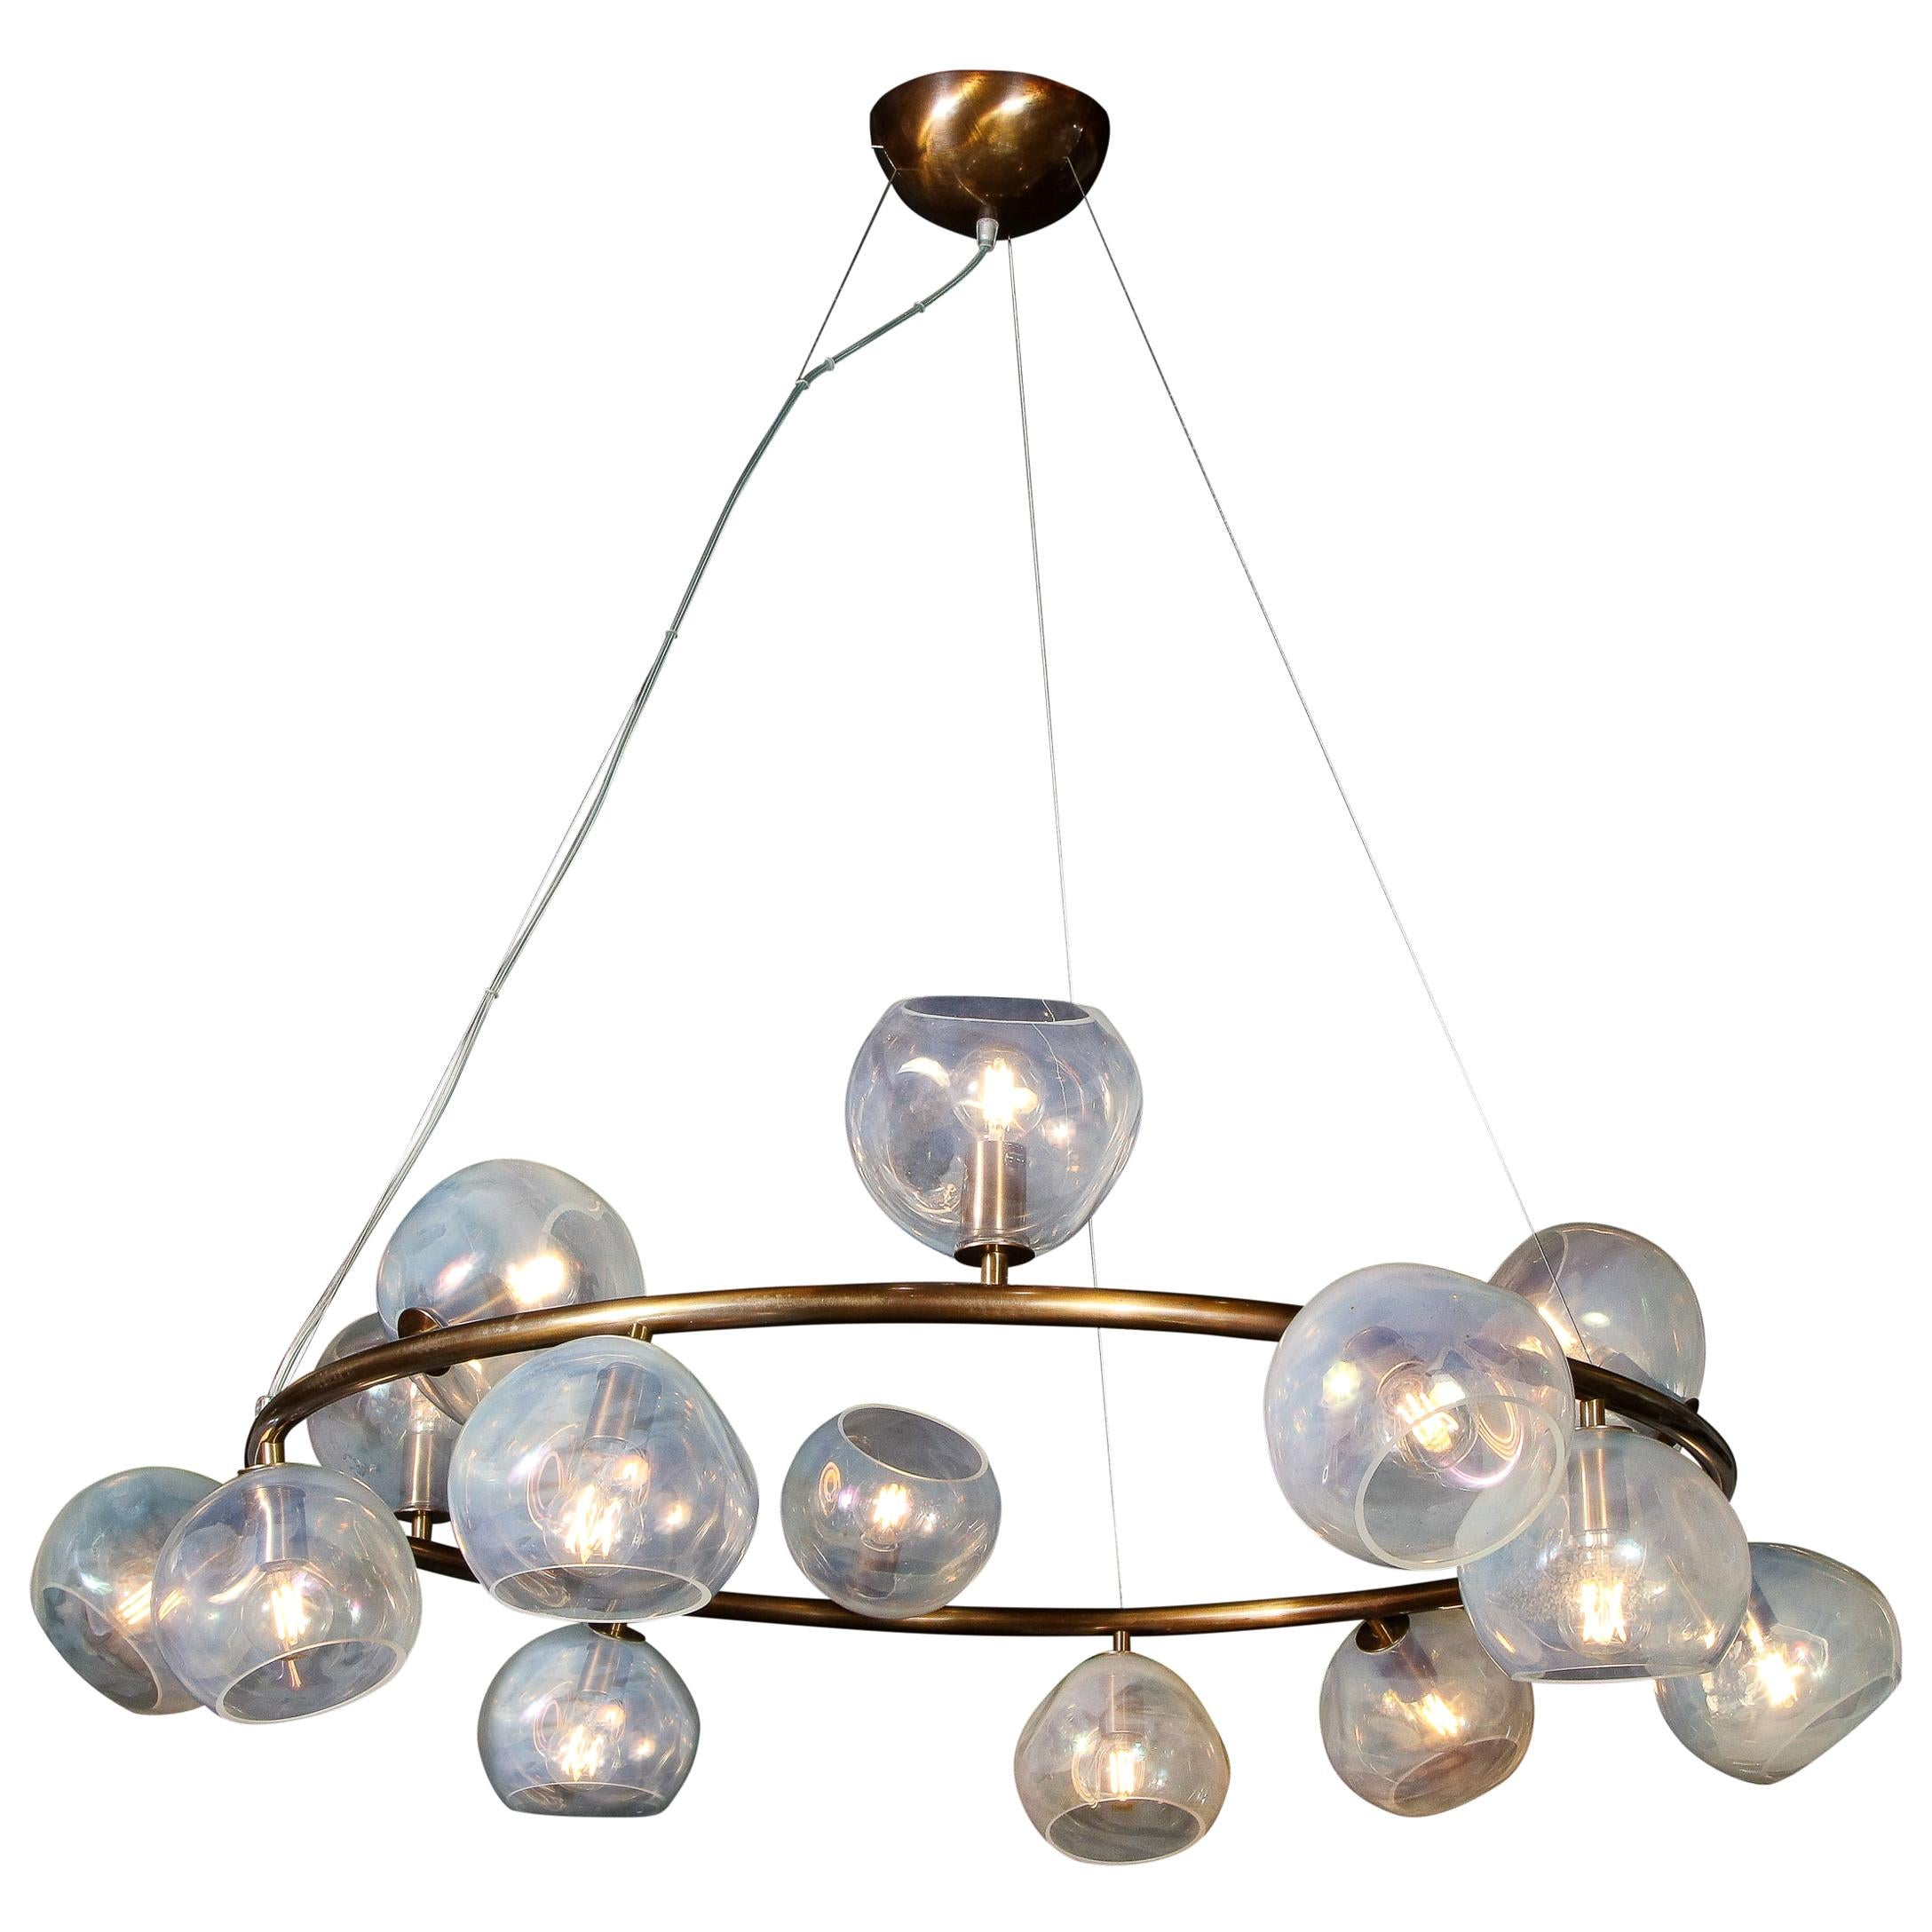 Modernist Oil Rubbed Bronze Chandelier with Organic Hand Blown Murano Shades